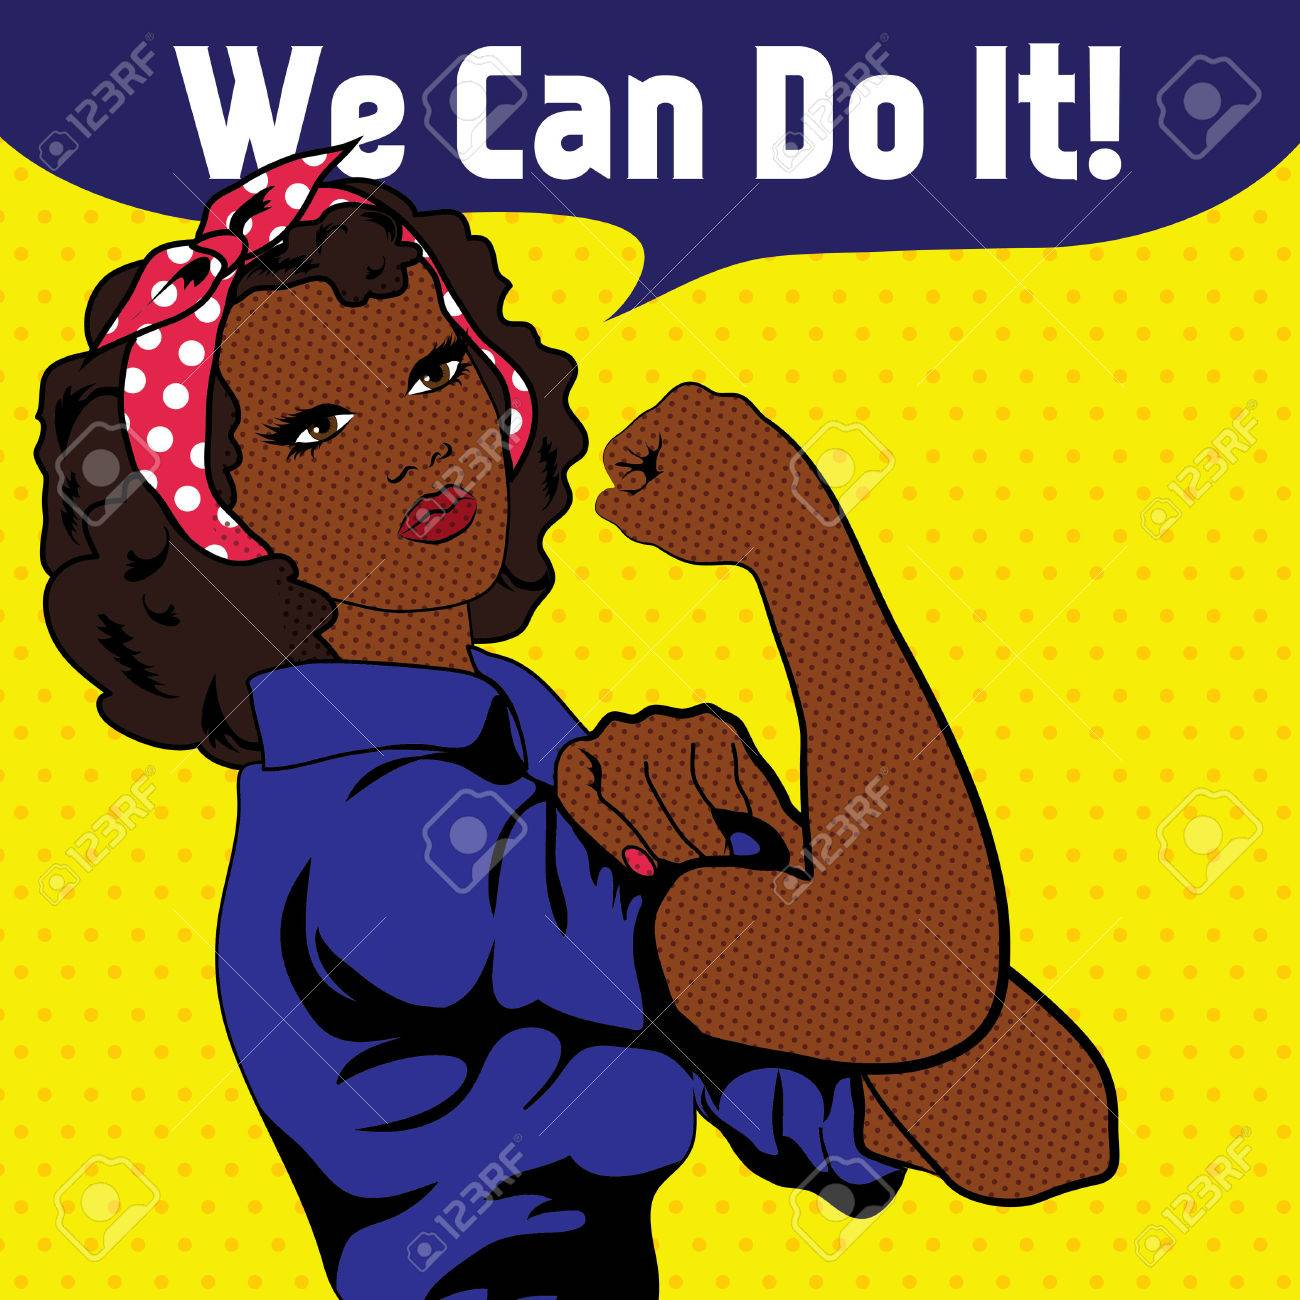 We Can Do It, an iconic woman's fist symbol - 51860631